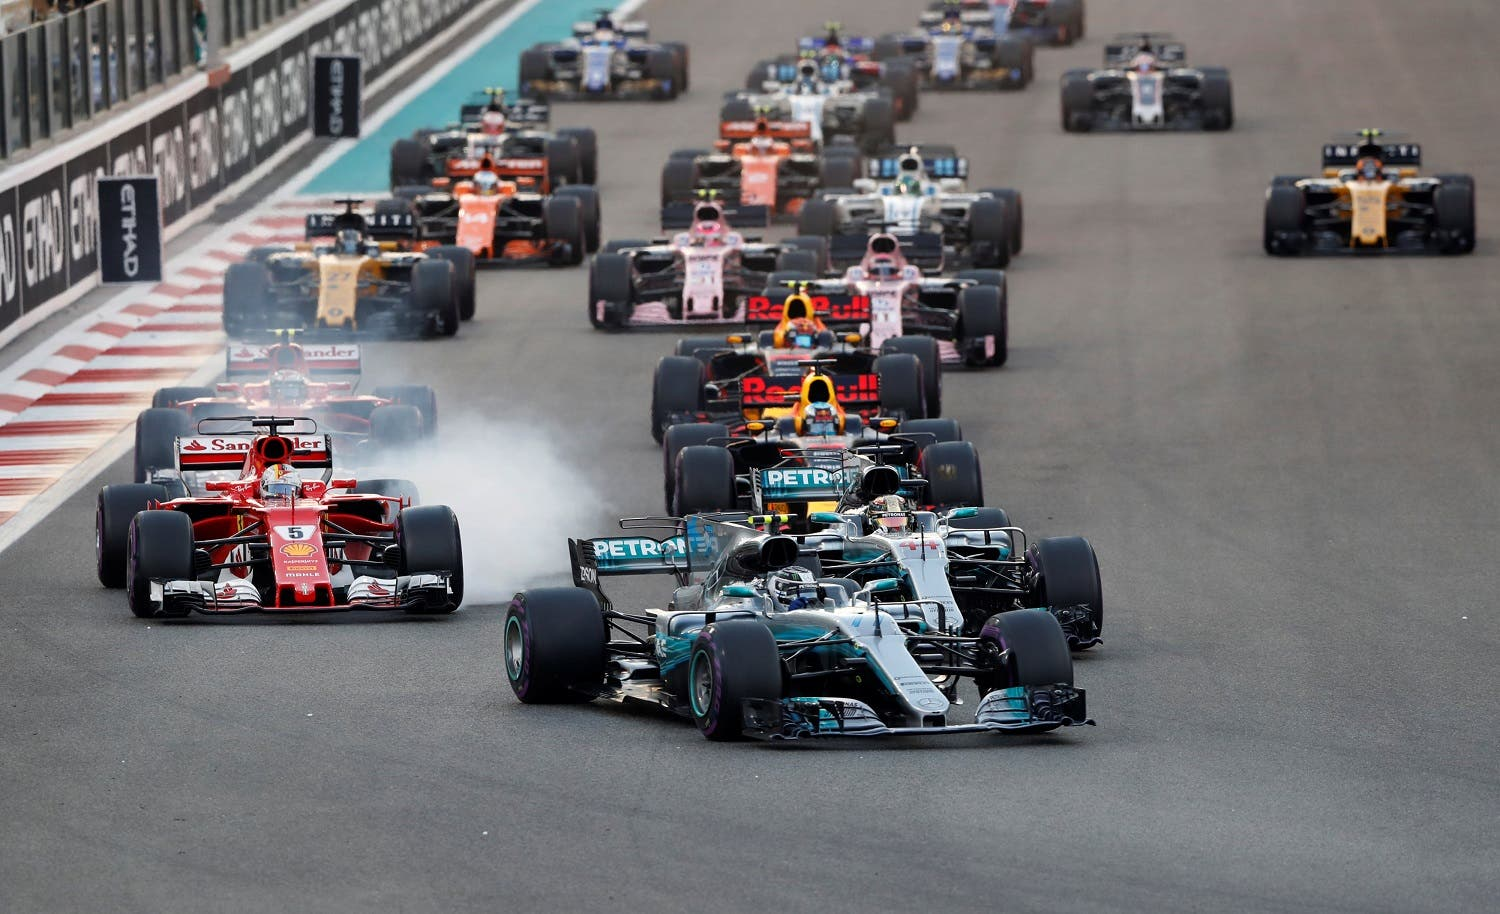 Mercedes' Valtteri Bottas leads during the start of the race during Abu Dhabi Grand Prix at Yas Marina Circuit on November 26, 2017. (Reuters)